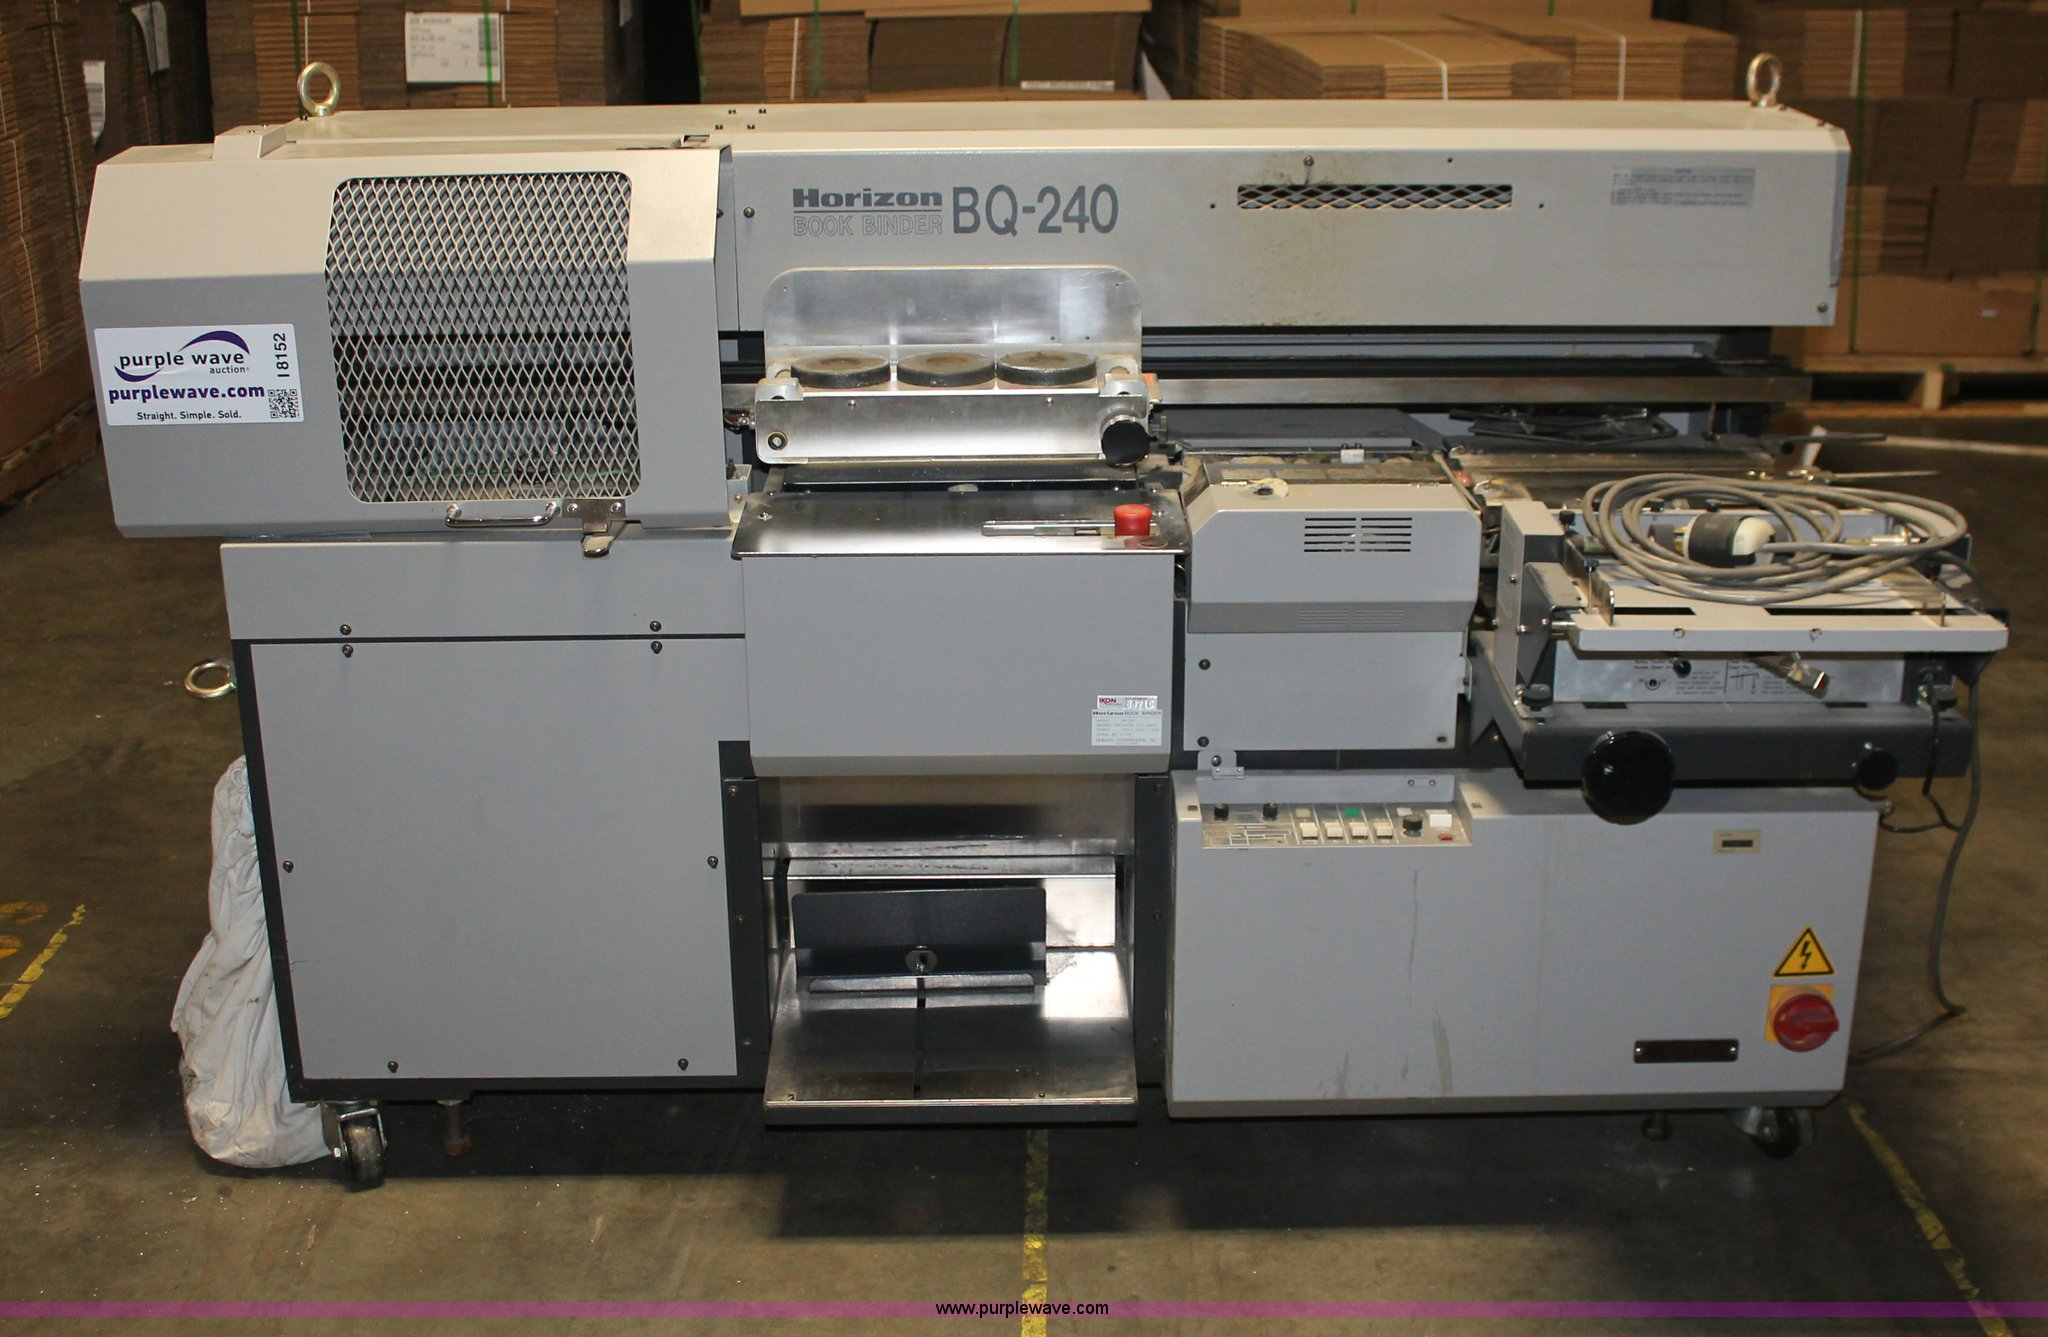 Horizon BQ-240 perfect bound book binder for sale in Kansas